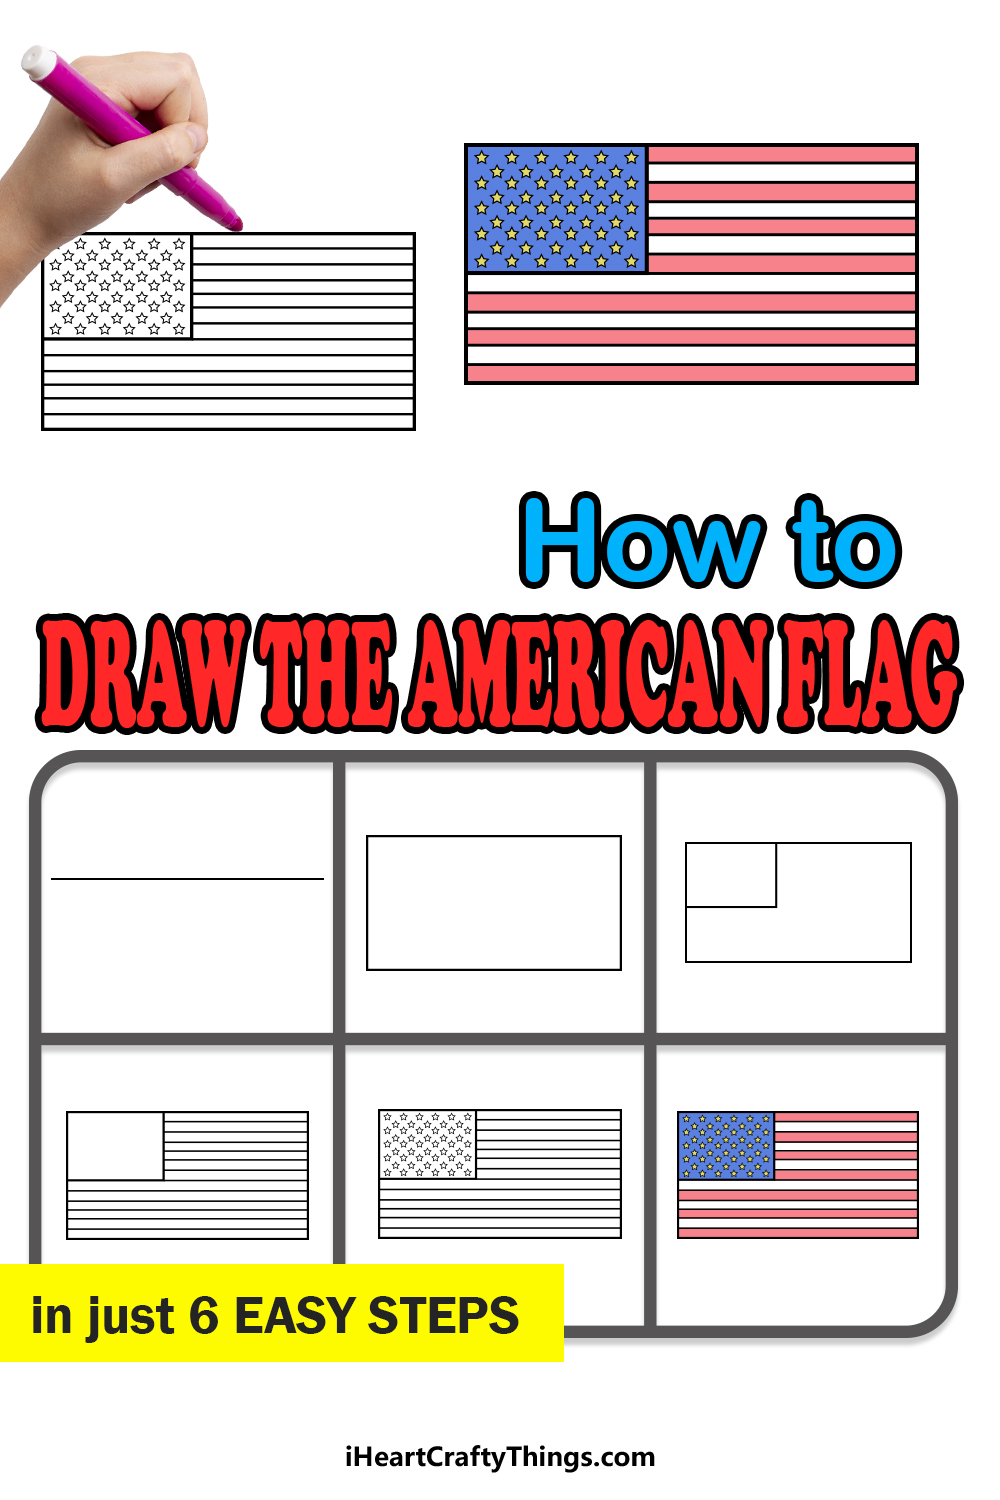 how to draw the american flag in 6 easy steps